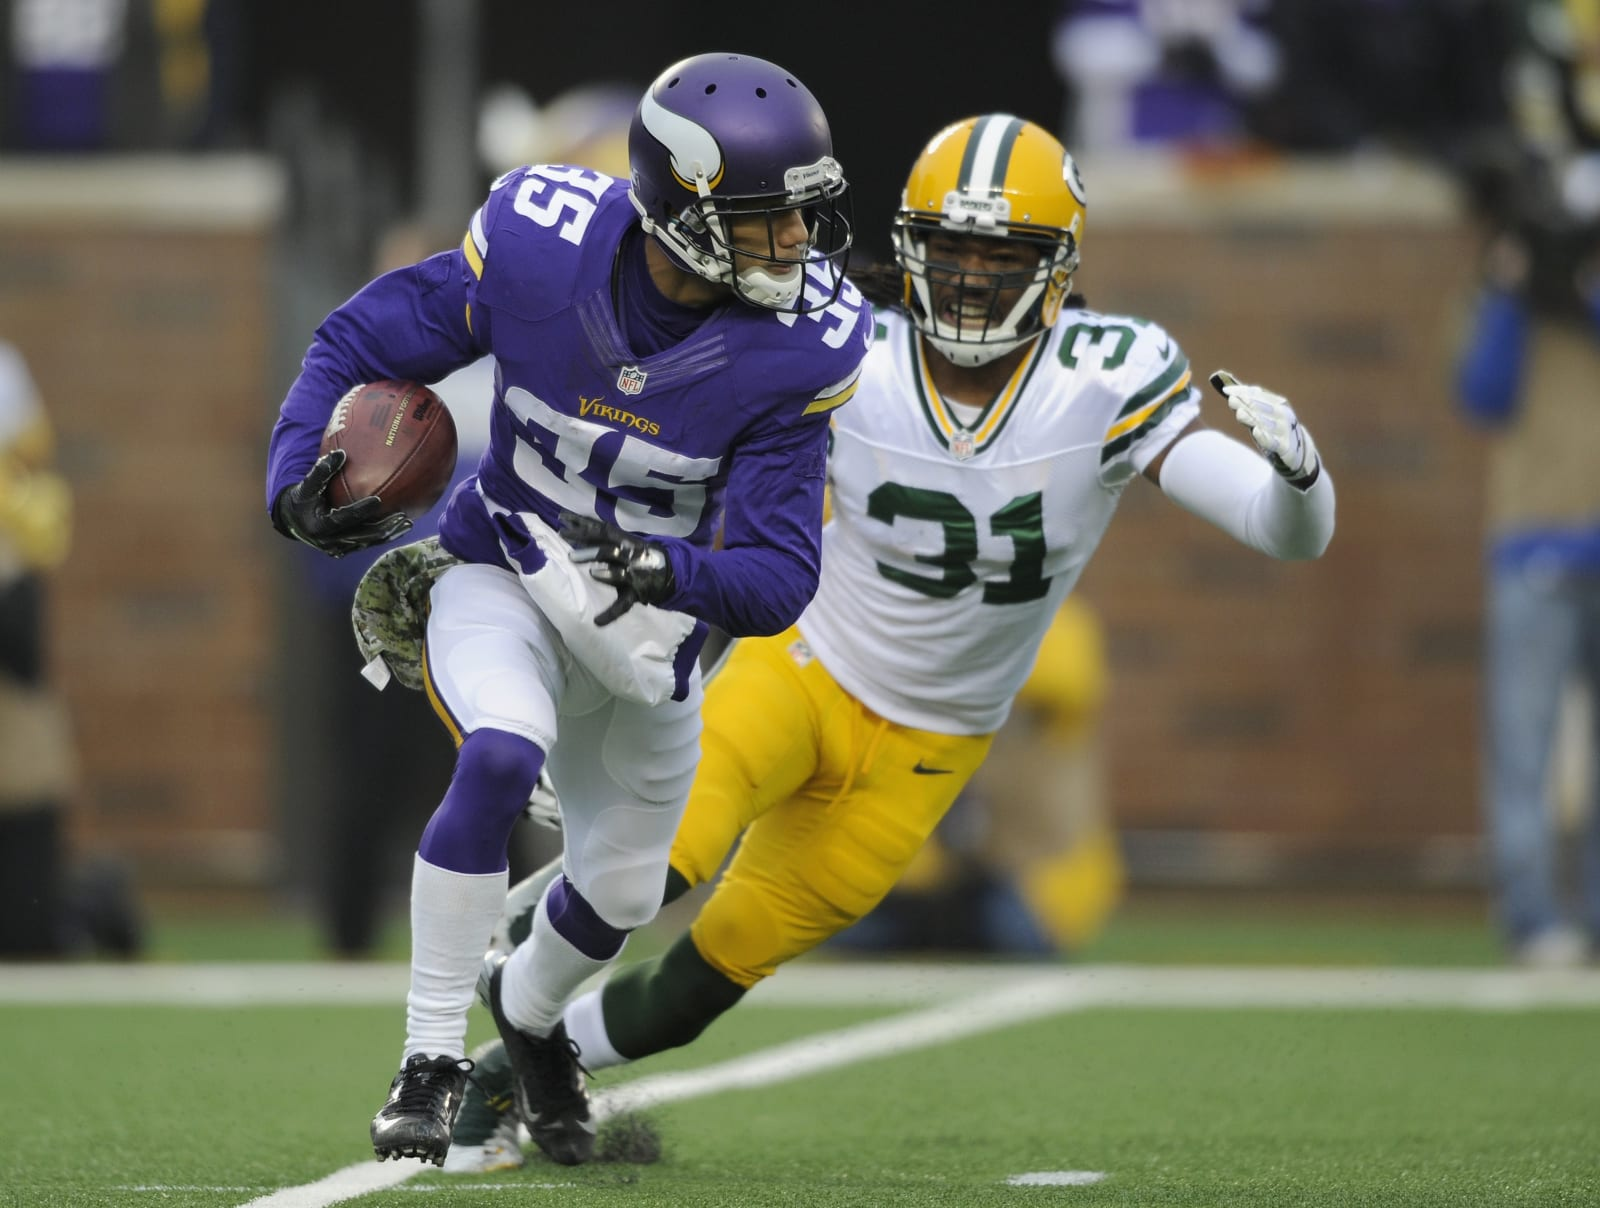 MINNEAPOLIS, MN - NOVEMBER 23: Marcus Sherels #35 of the Minnesota Vikings returns a punt against Davon House #31 of the Green Bay Packers during the first quarter of the game on November 23, 2014 at TCF Bank Stadium in Minneapolis, Minnesota. (Photo by Hannah Foslien/Getty Images)